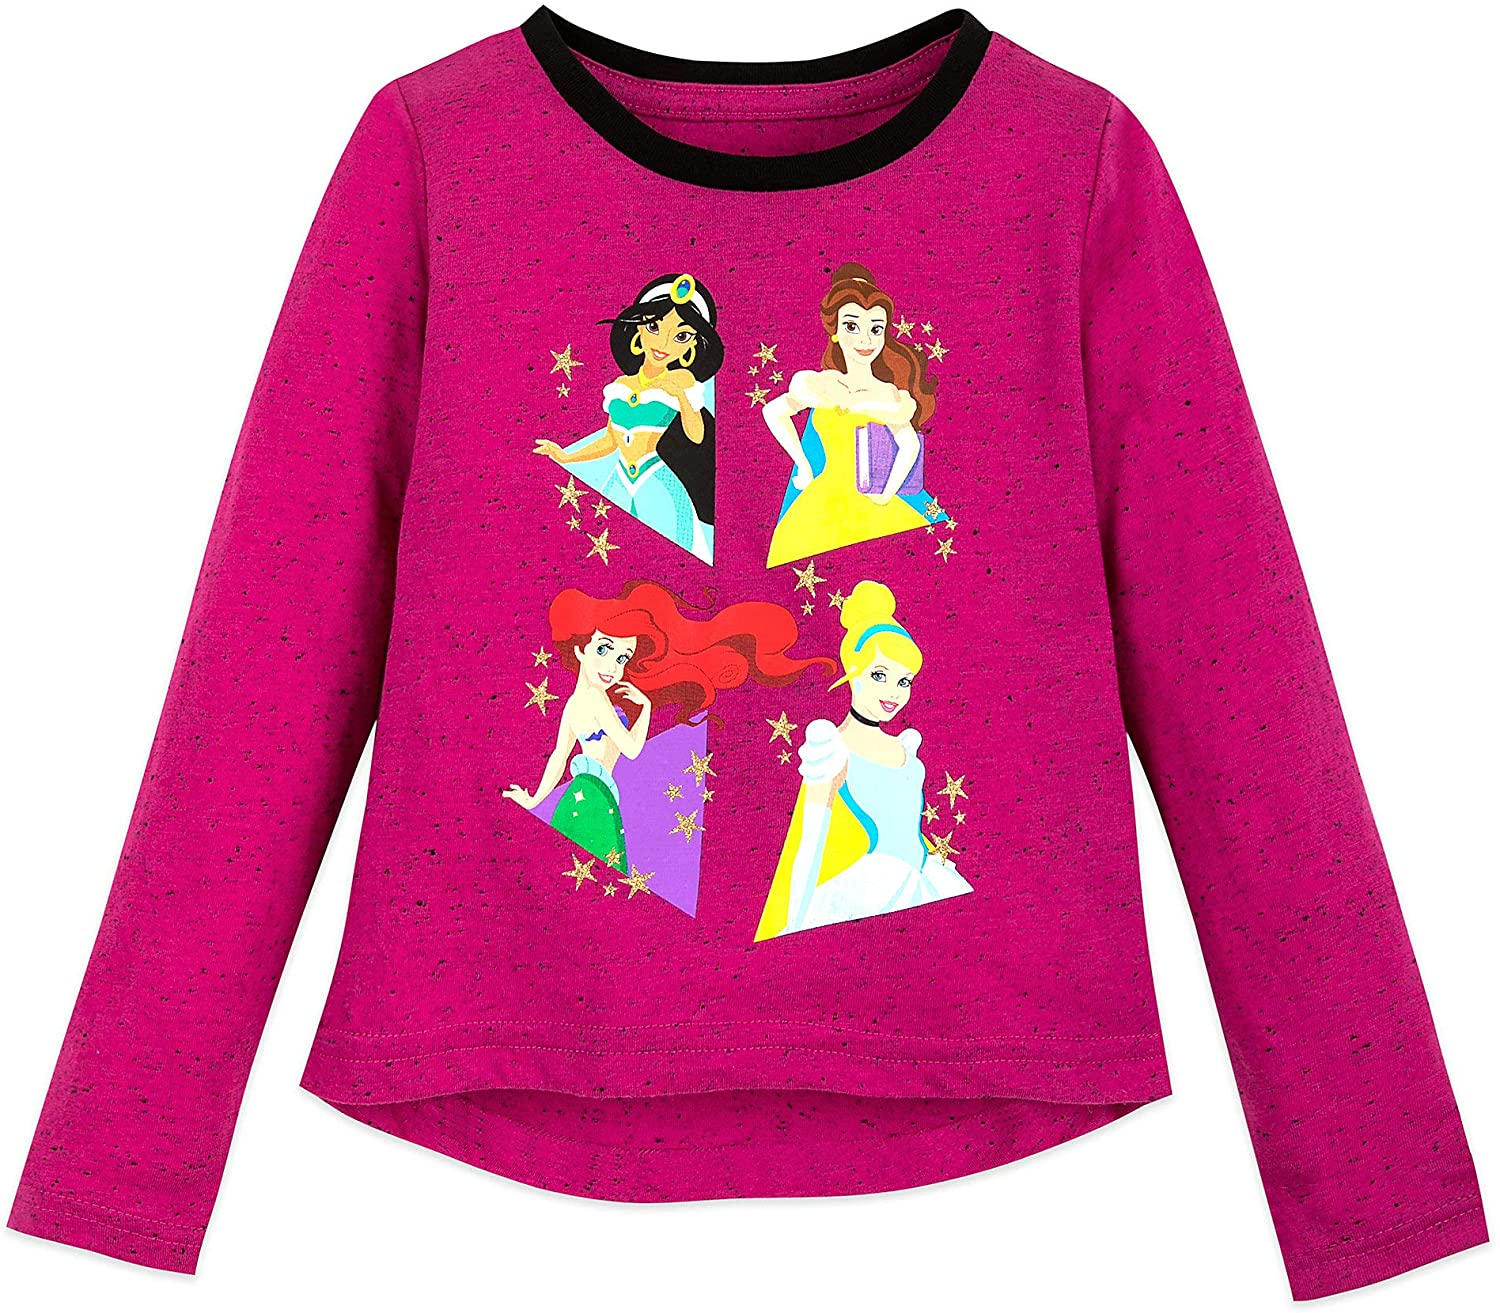 Disney Princess Long Sleeve T-Shirt for Girls Multi